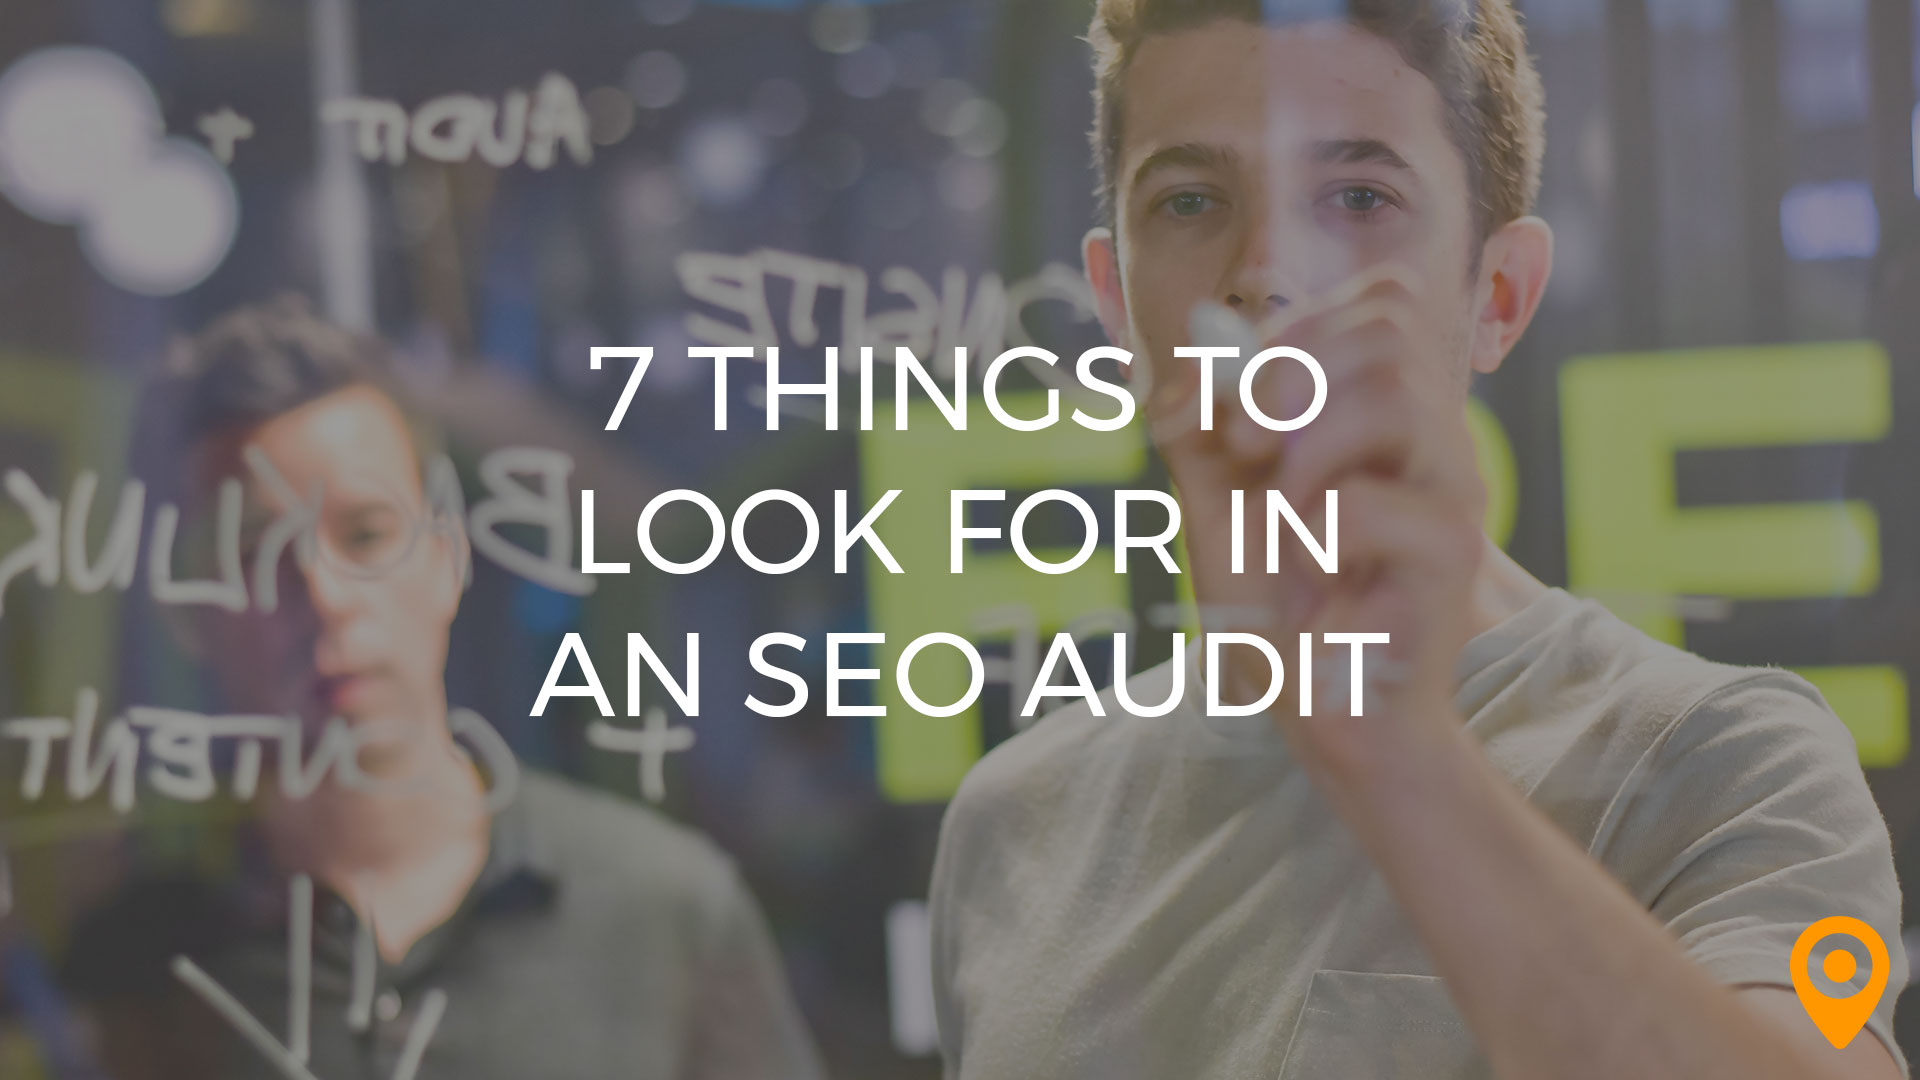 7 Things to Look for in an SEO Audit